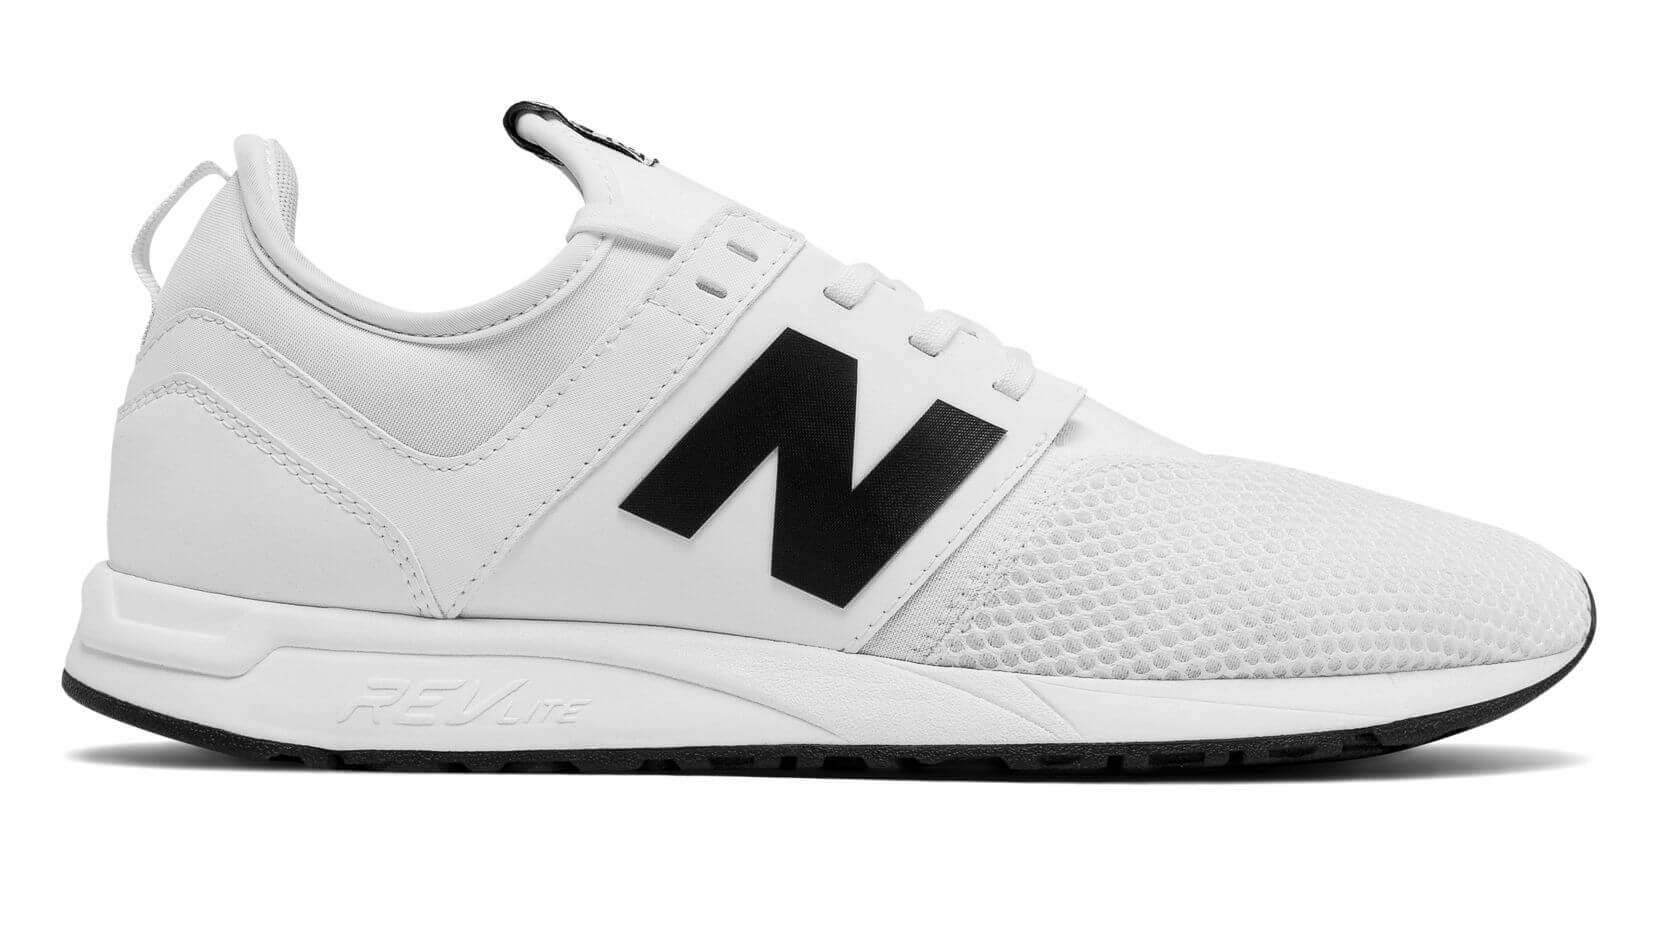 New Balance 247 shoelaces